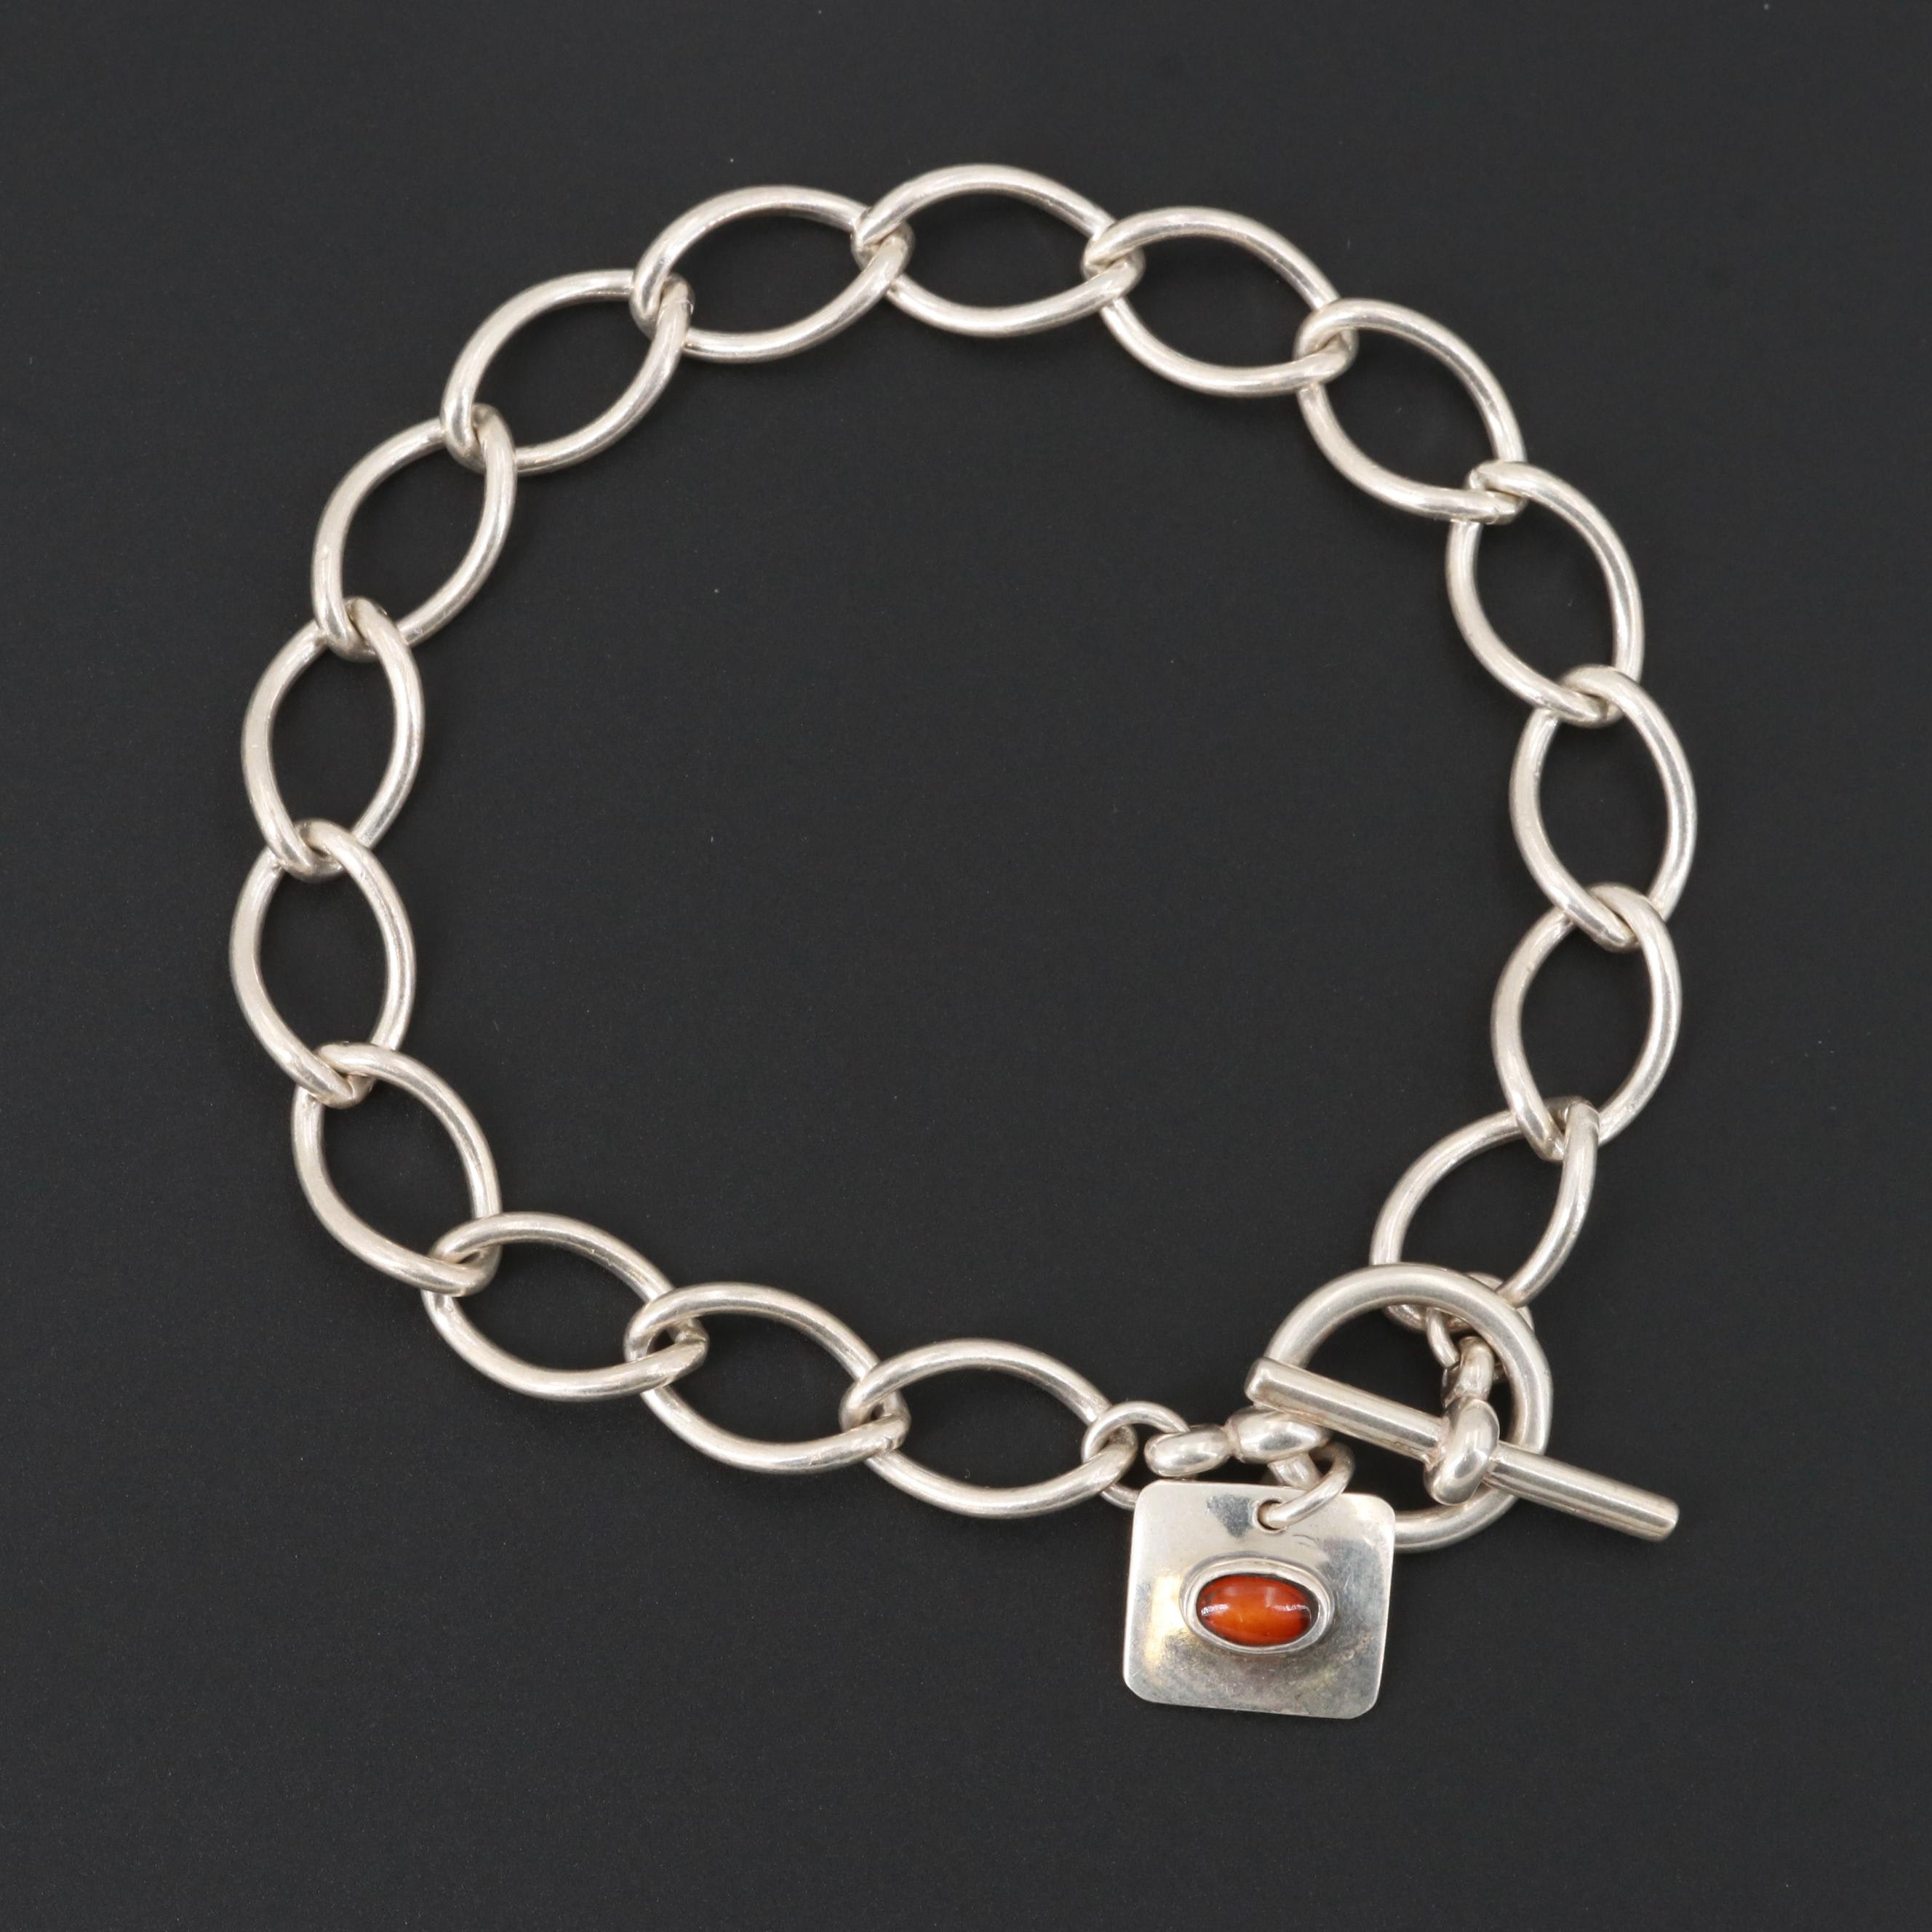 Mexican Sterling Silver Chain Bracelet with Amber Charm